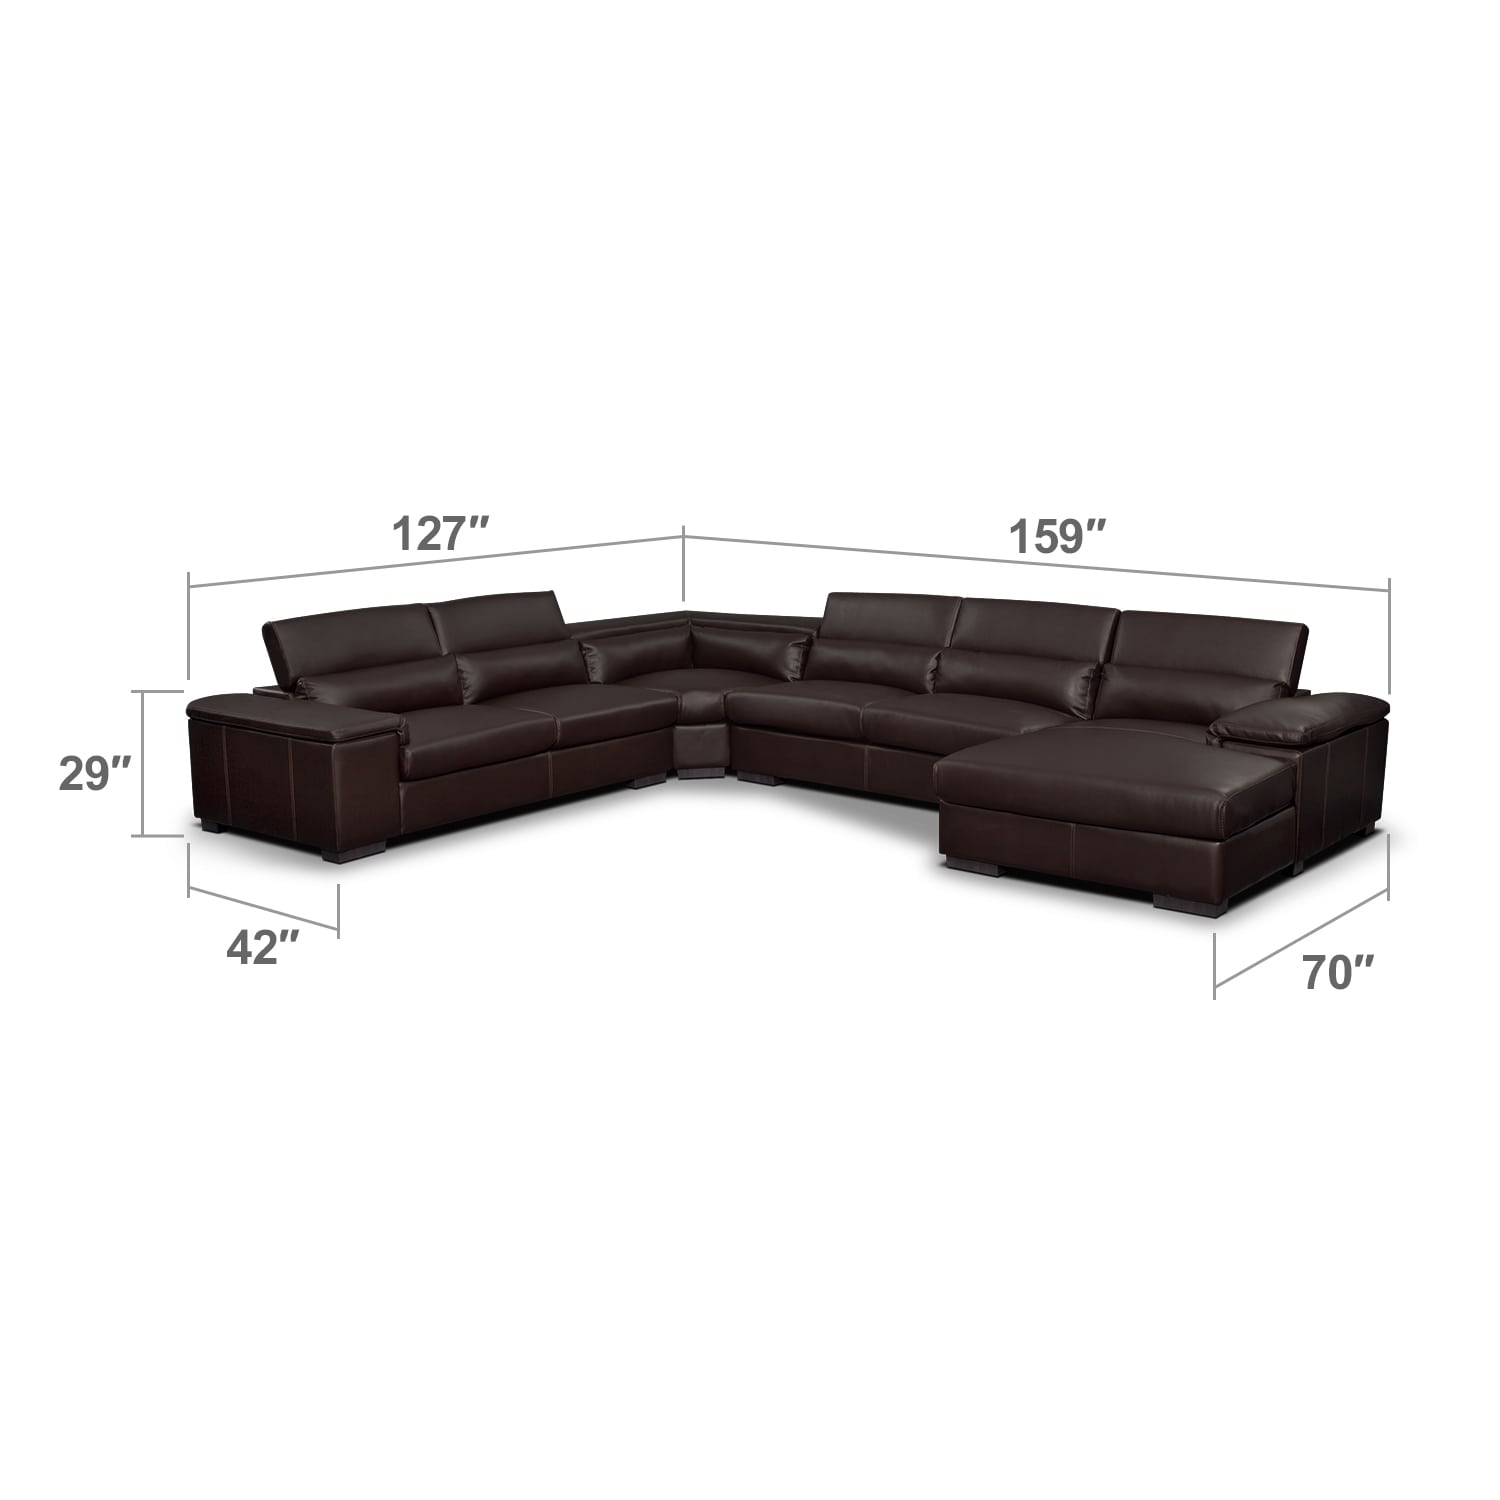 Living Room Furniture - Ventana 4-Piece Right-Facing Sectional - Godiva